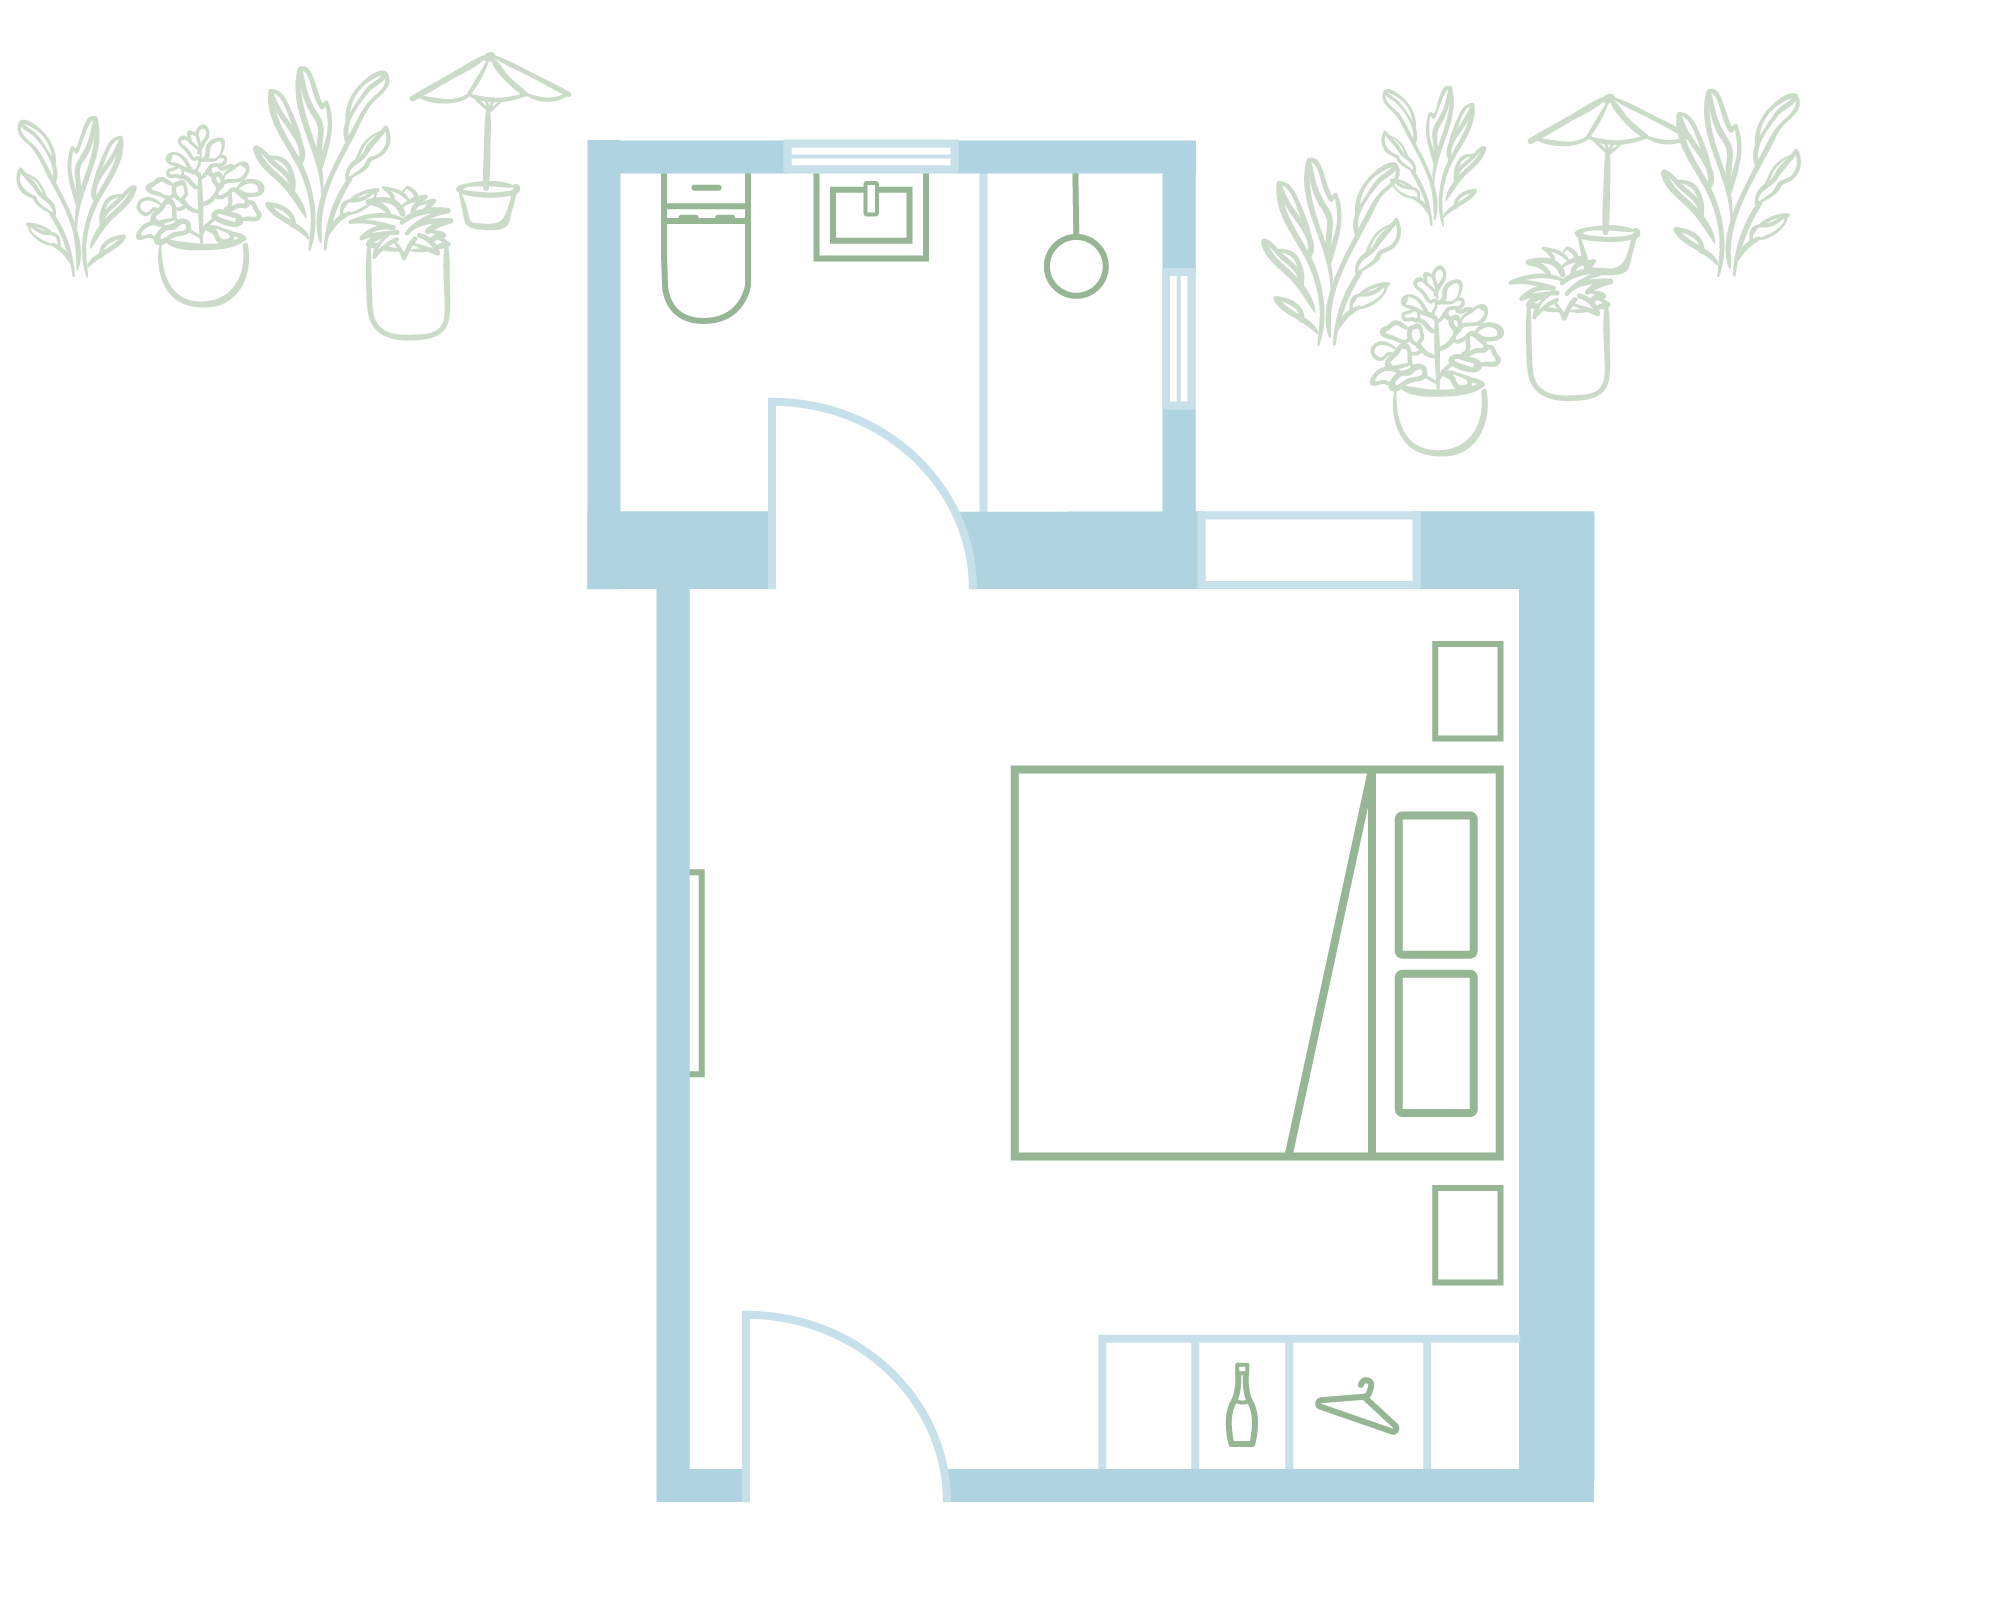 BJH-room5-floorplan.jpg